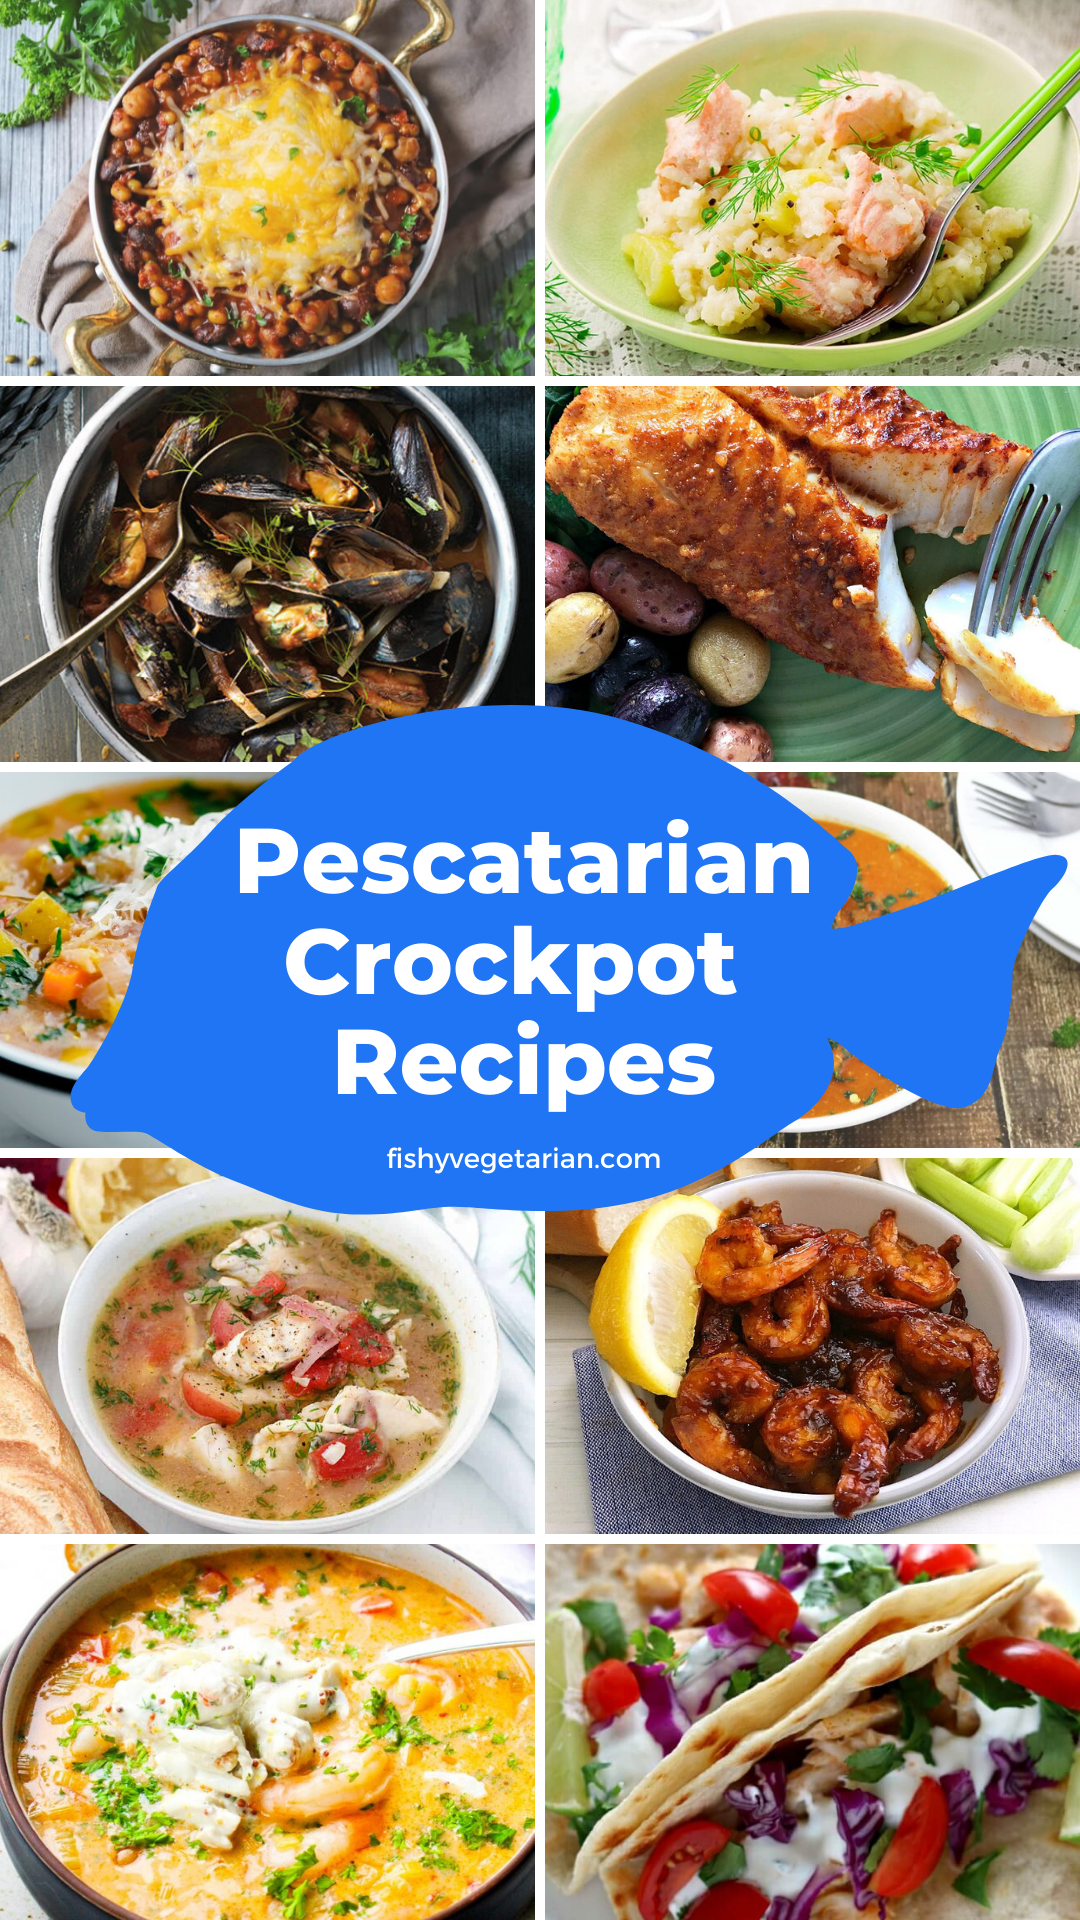 21 Flavorful Pescatarian Crock Pot Recipes Your Whole Family Will Enjoy